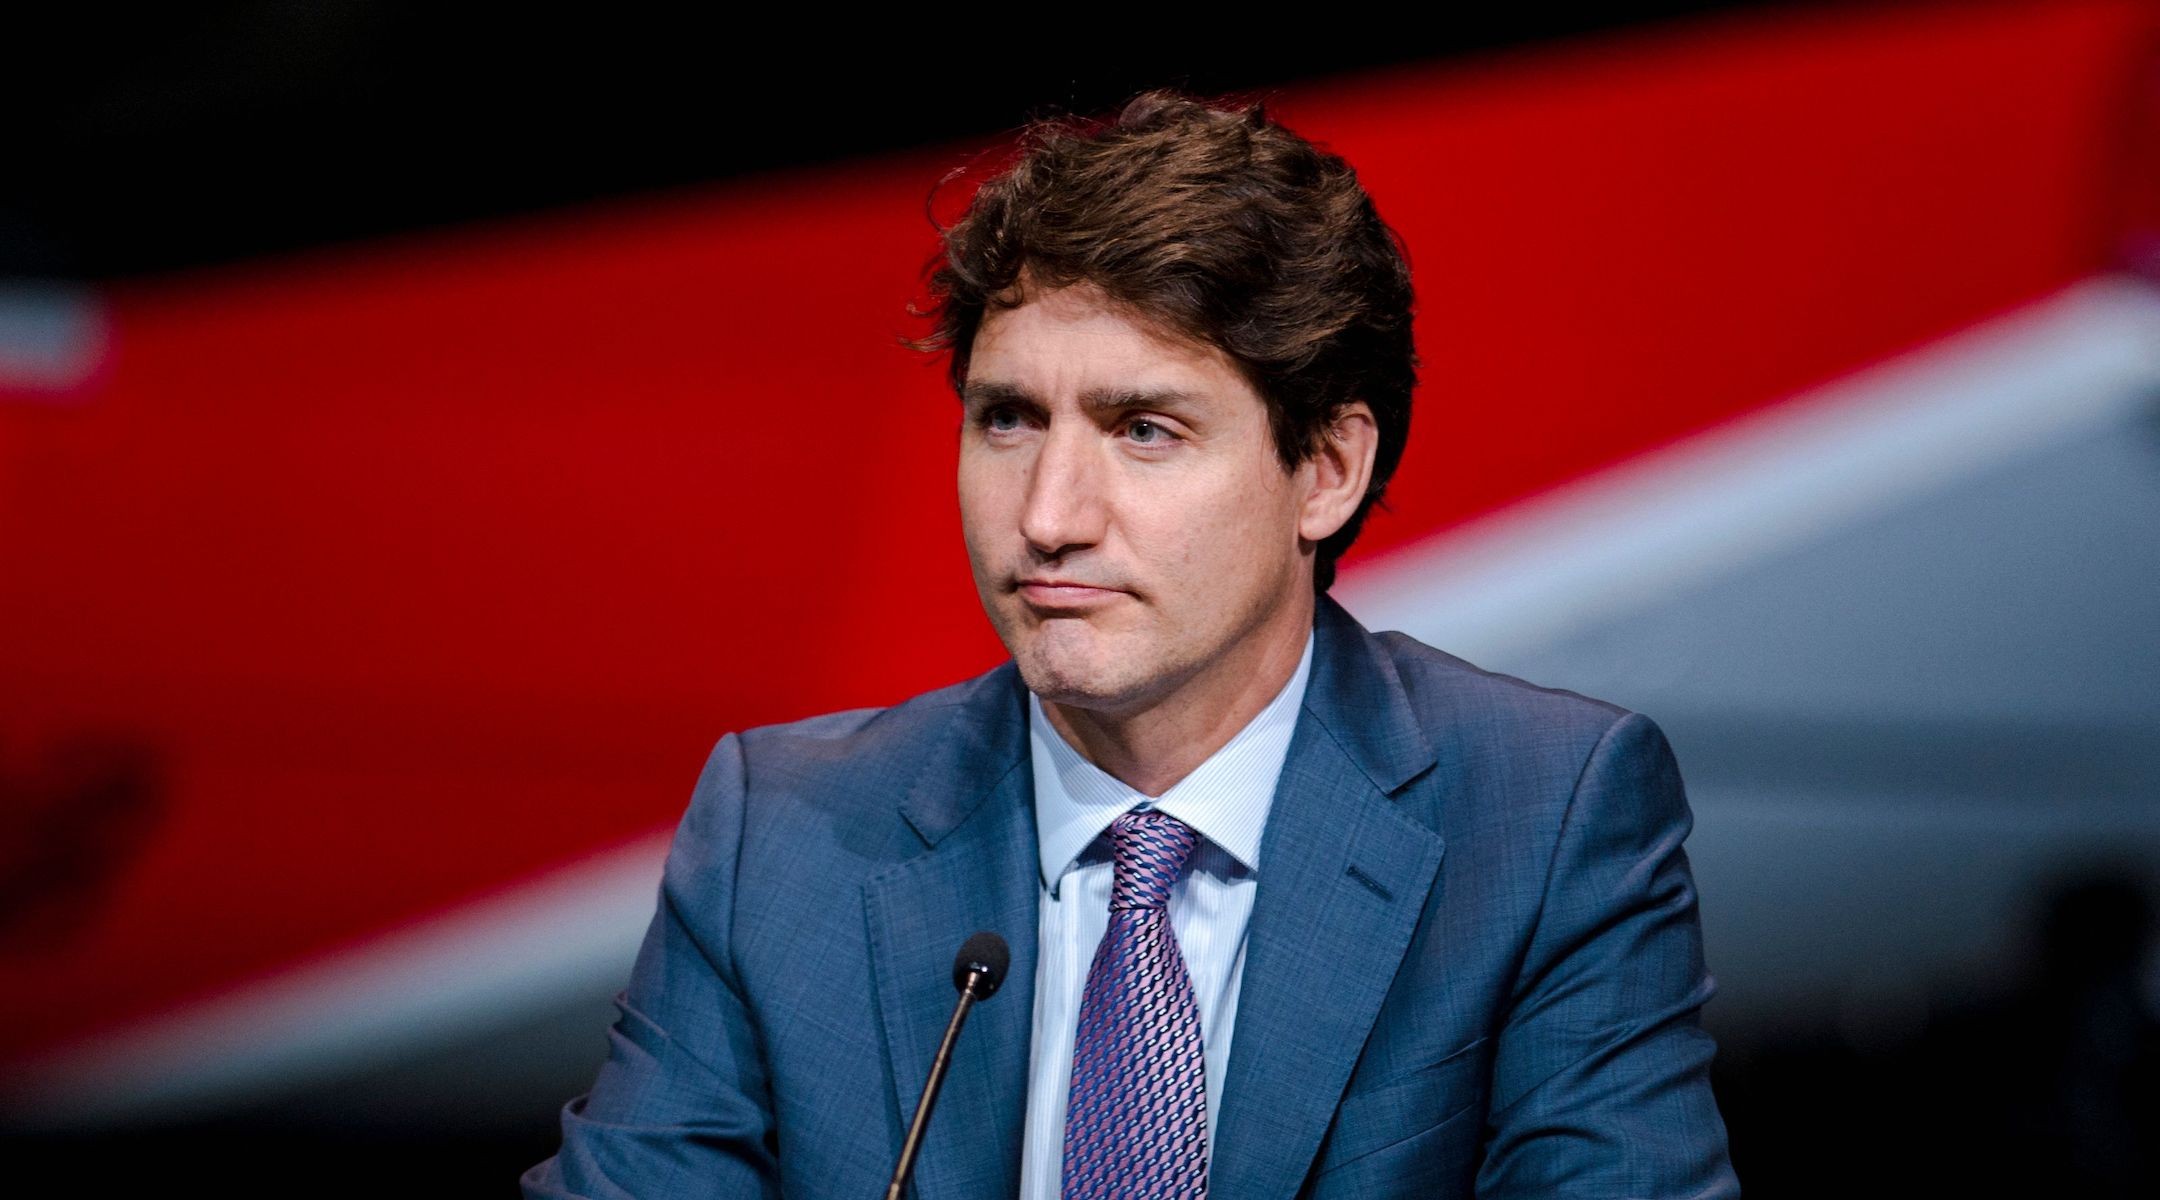 Canada will spend $5M to strengthen security at Jewish institutions, Justin Trudeau tells antisemitism summit